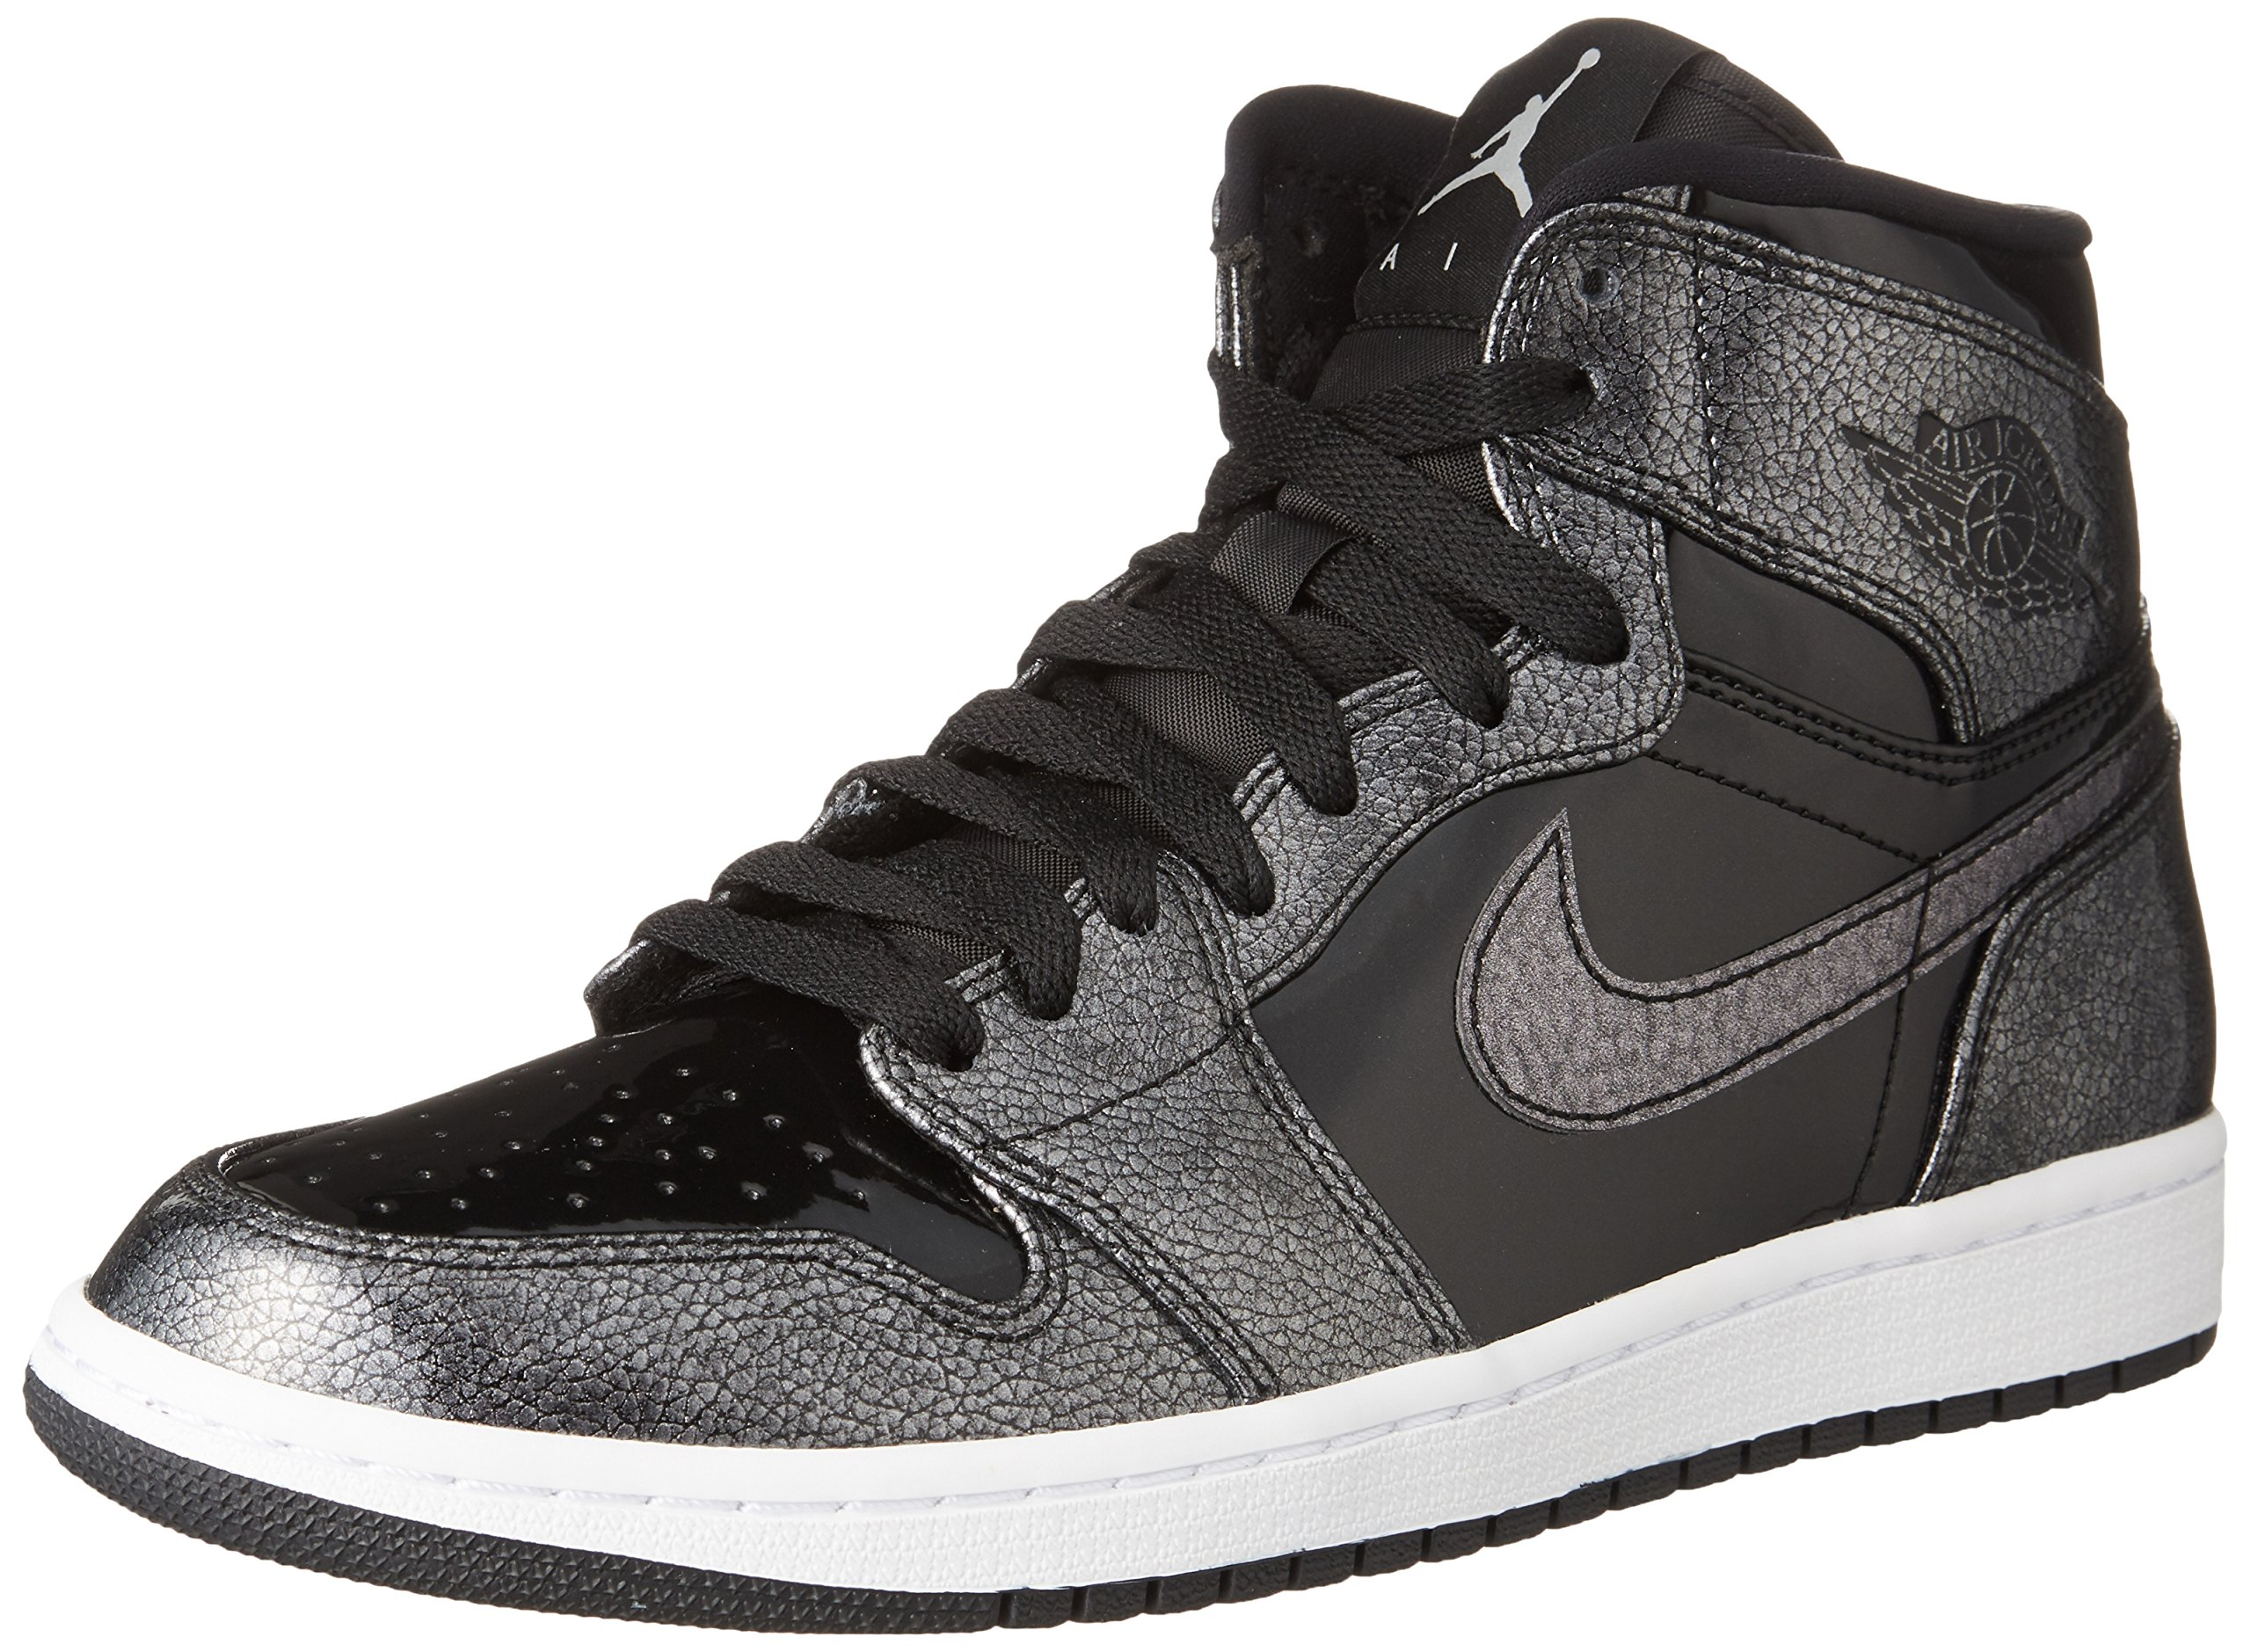 Nike Mens Air Jordan 1 Retro High Top Basketball Shoe Black/Black-White 10